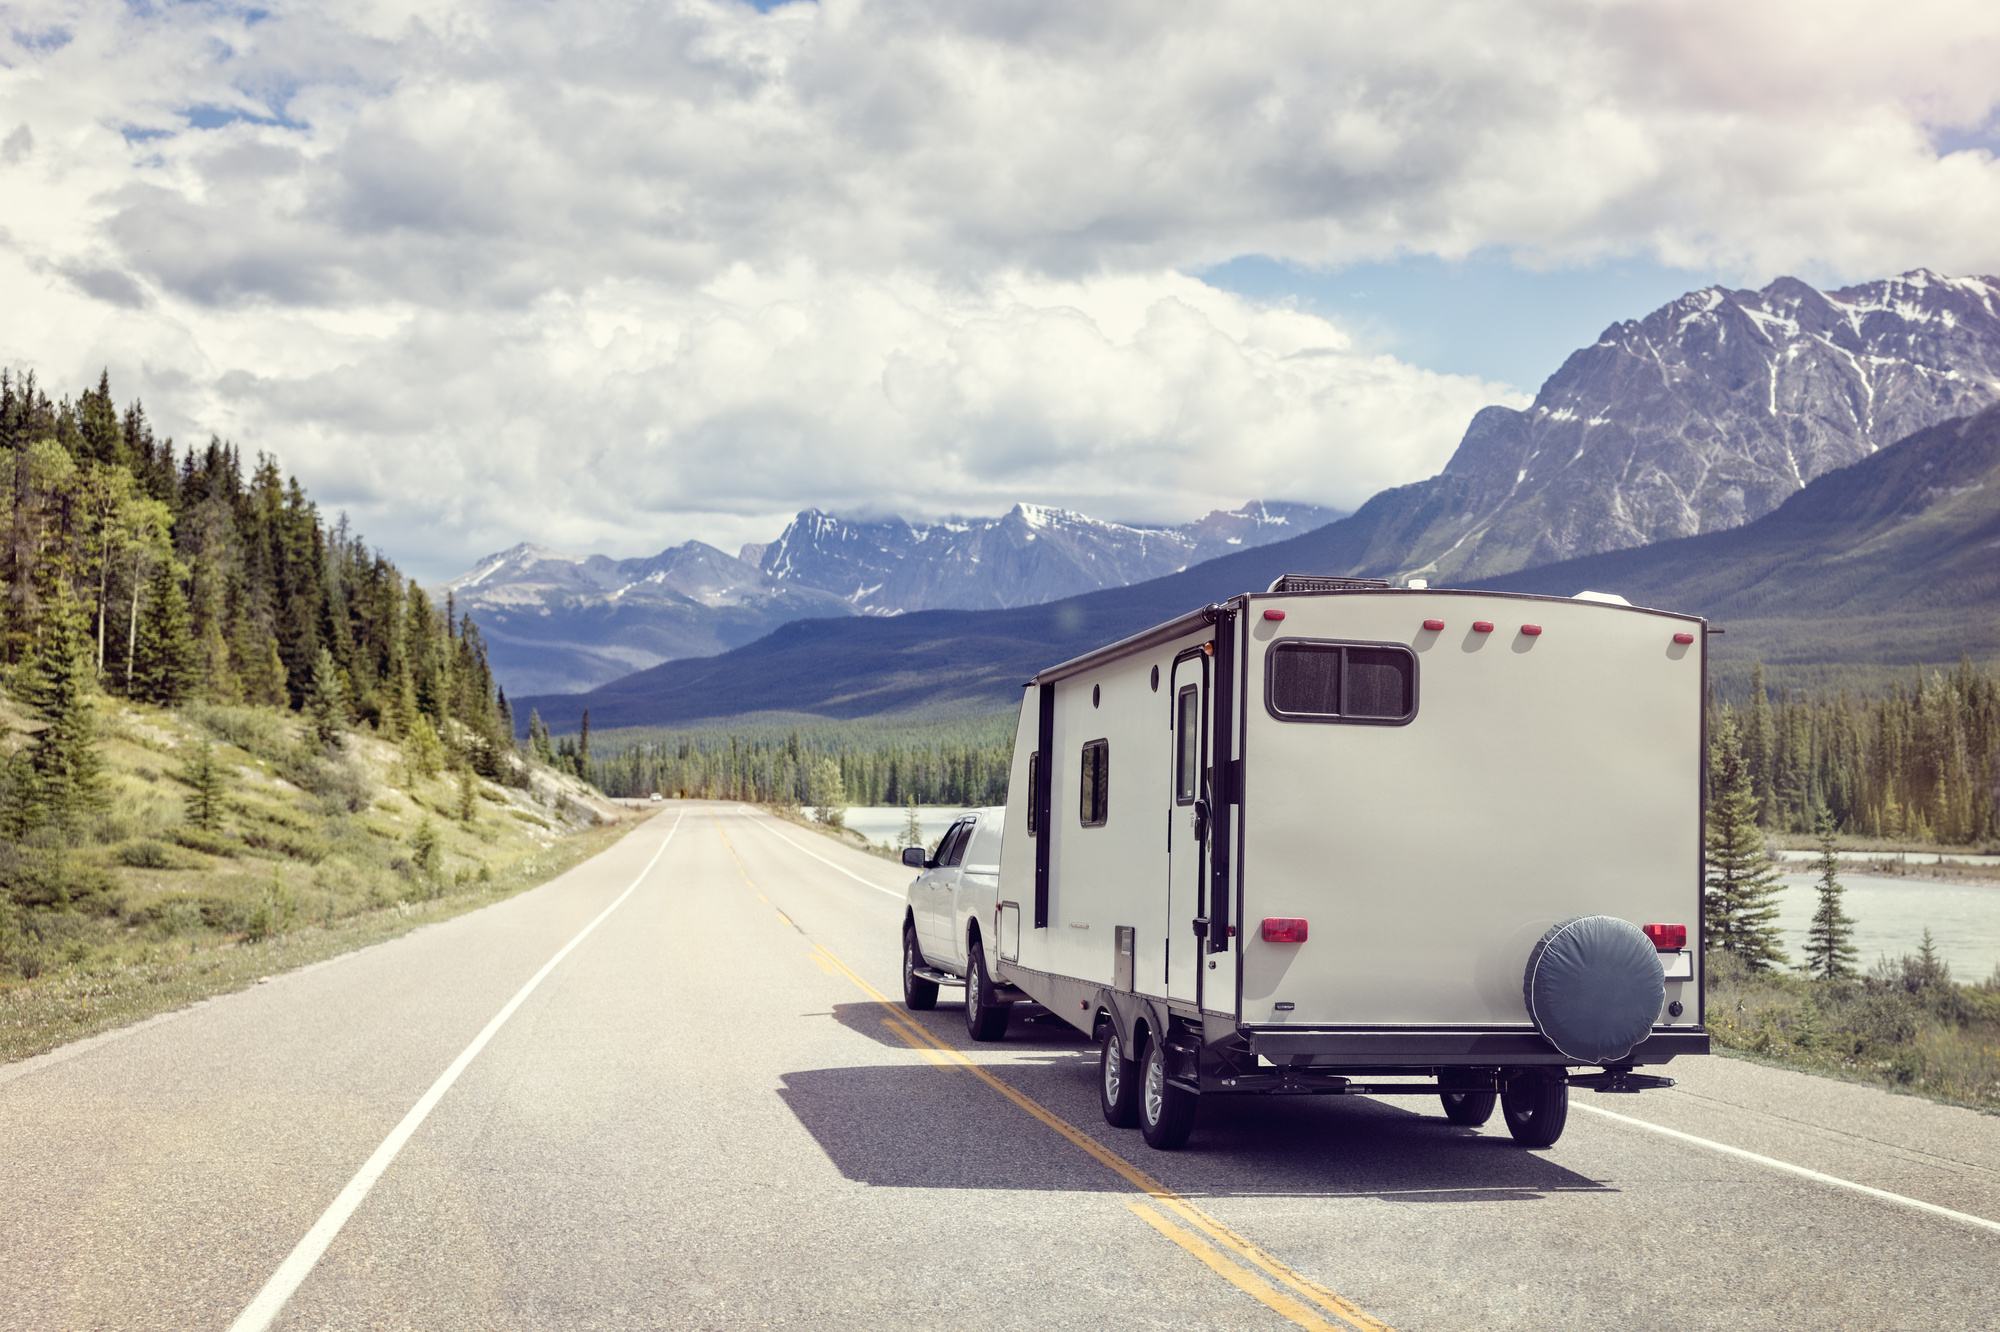 RV on a Road